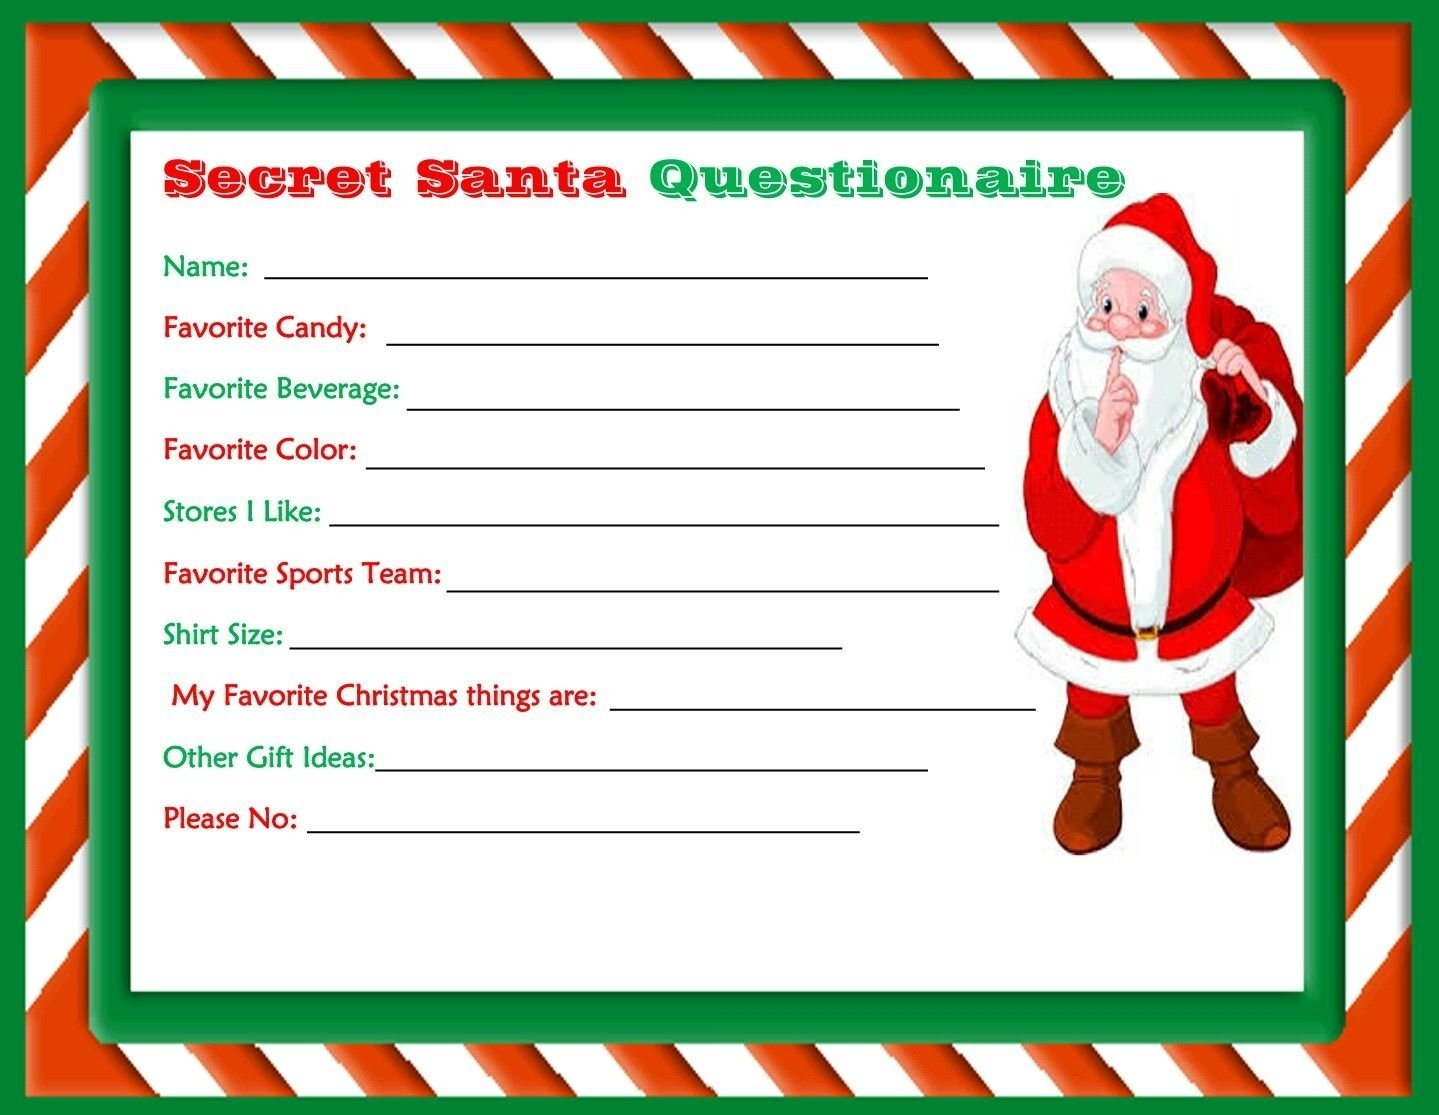 10 Most Recommended Secret Santa Ideas For Work